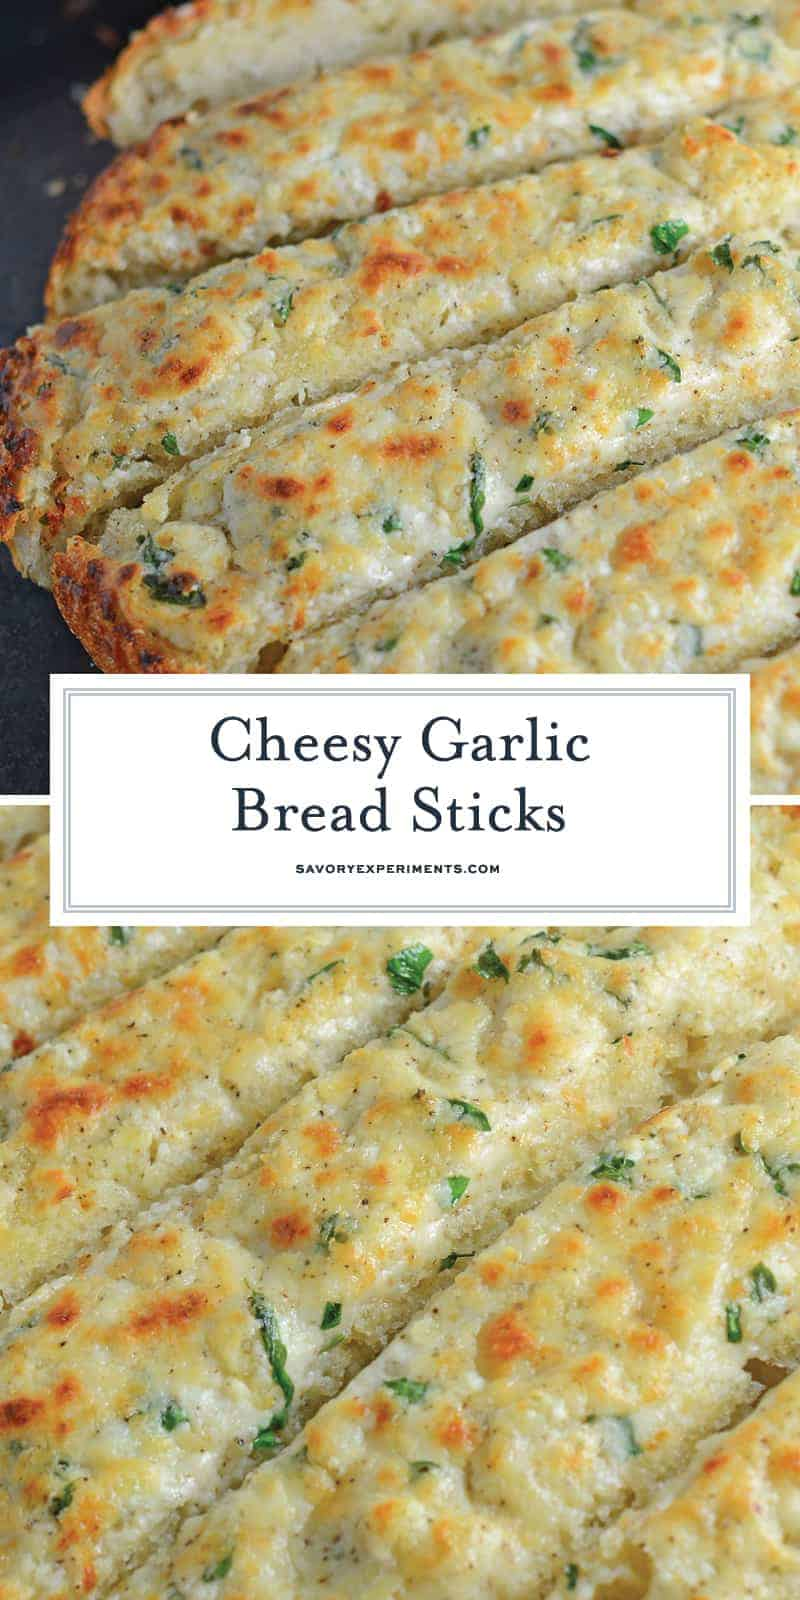 Cheesy Garlic Bread is made with a blend of cheese, cream cheese, garlic and seasonings to make the BEST garlic bread you've ever tasted! #garlicbread #breadsticksrecipe www.savoryexperiments.com